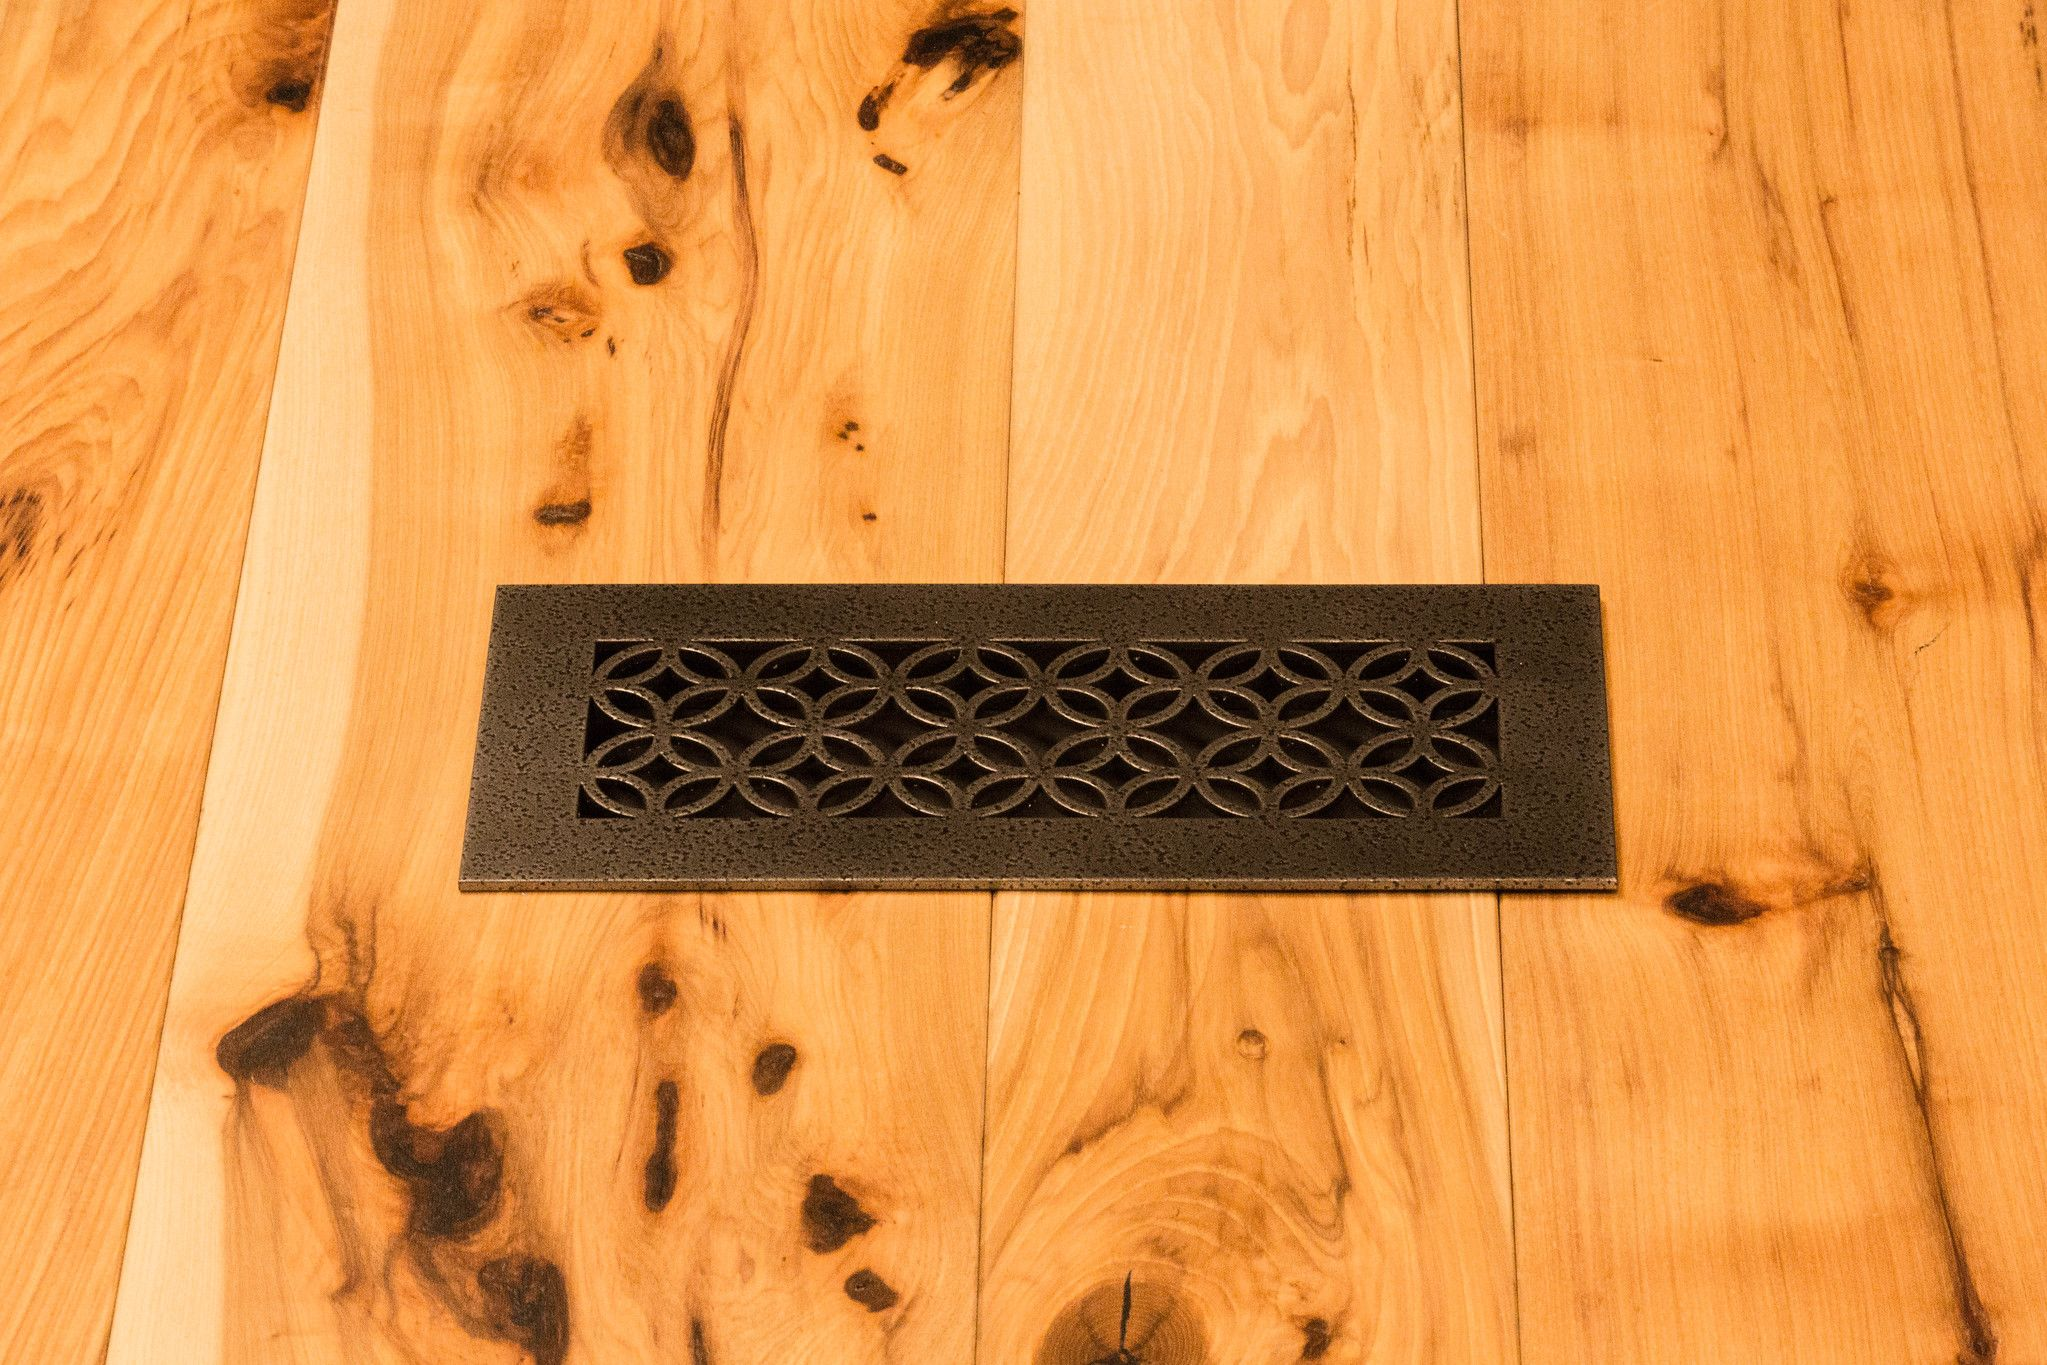 Omni Vent Cover in 2020 Diy wood projects, Decorative